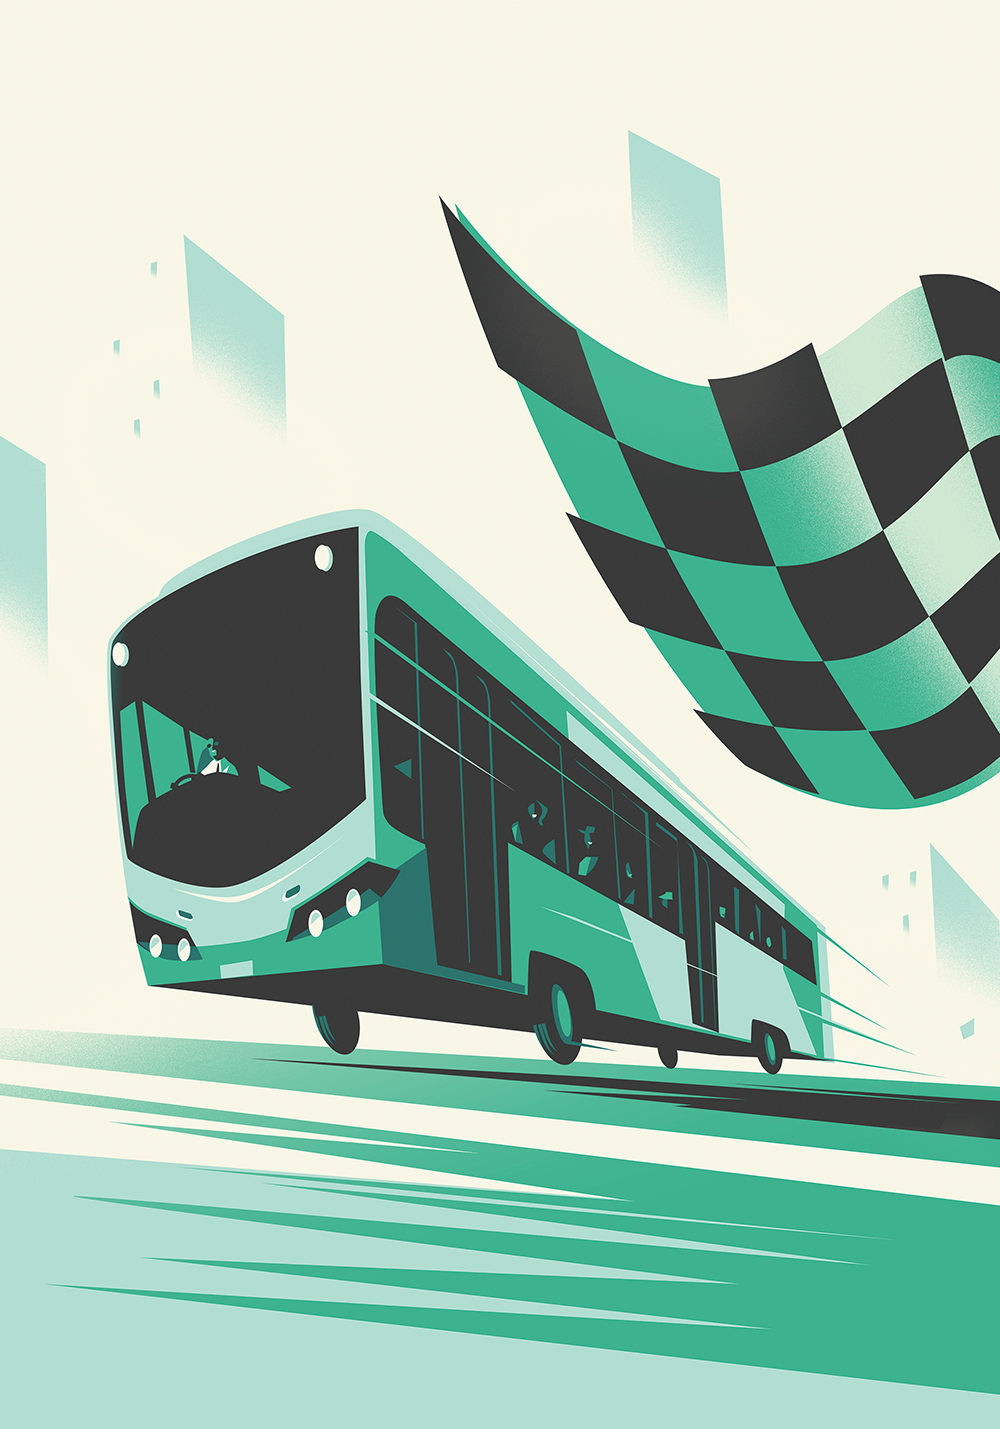 Bus and Checkered Flag deco poster illustration-Dean Gorissen.jpg